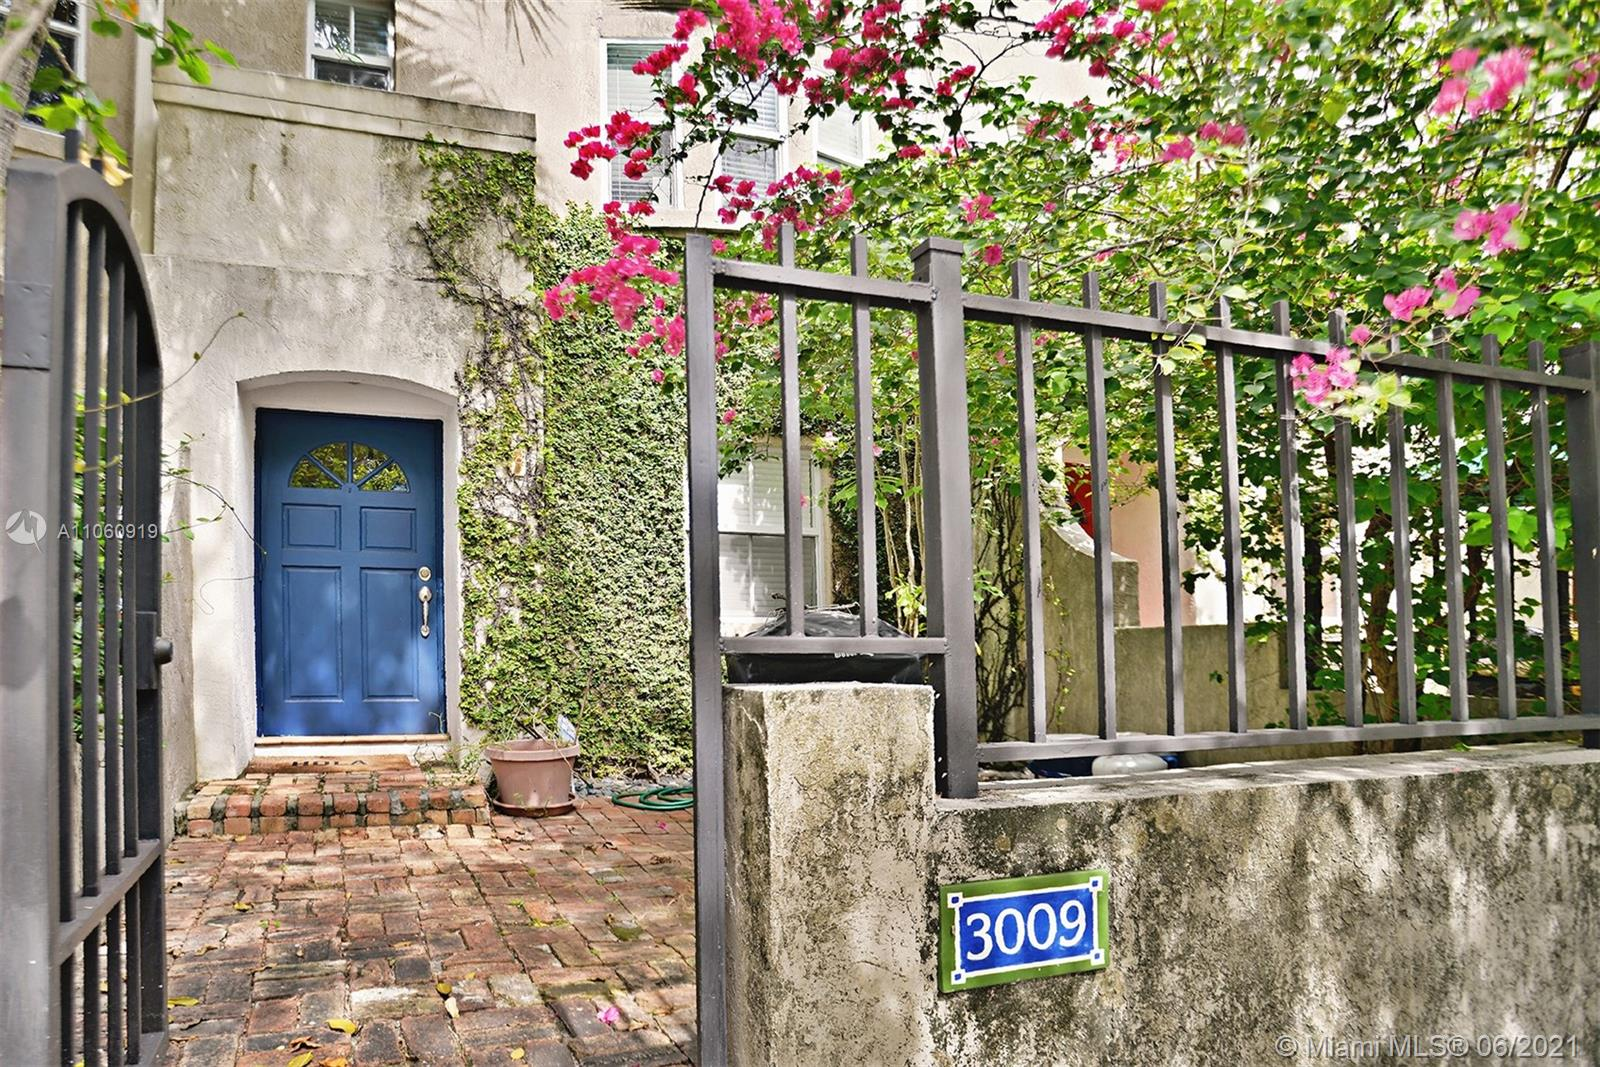 This gated tri-level French Village charmer features 2 bedrooms plus den/office and 2.5 baths. The unit has tile flooring throughout with wood floors in bedrooms. Enjoy a large remodeled eat-in kitchen with stainless steel appliances with plenty of room to cook and entertain. The bedrooms are spacious with vaulted ceilings and tons of storage. The unit has great amount of natural light and a one-car garage.